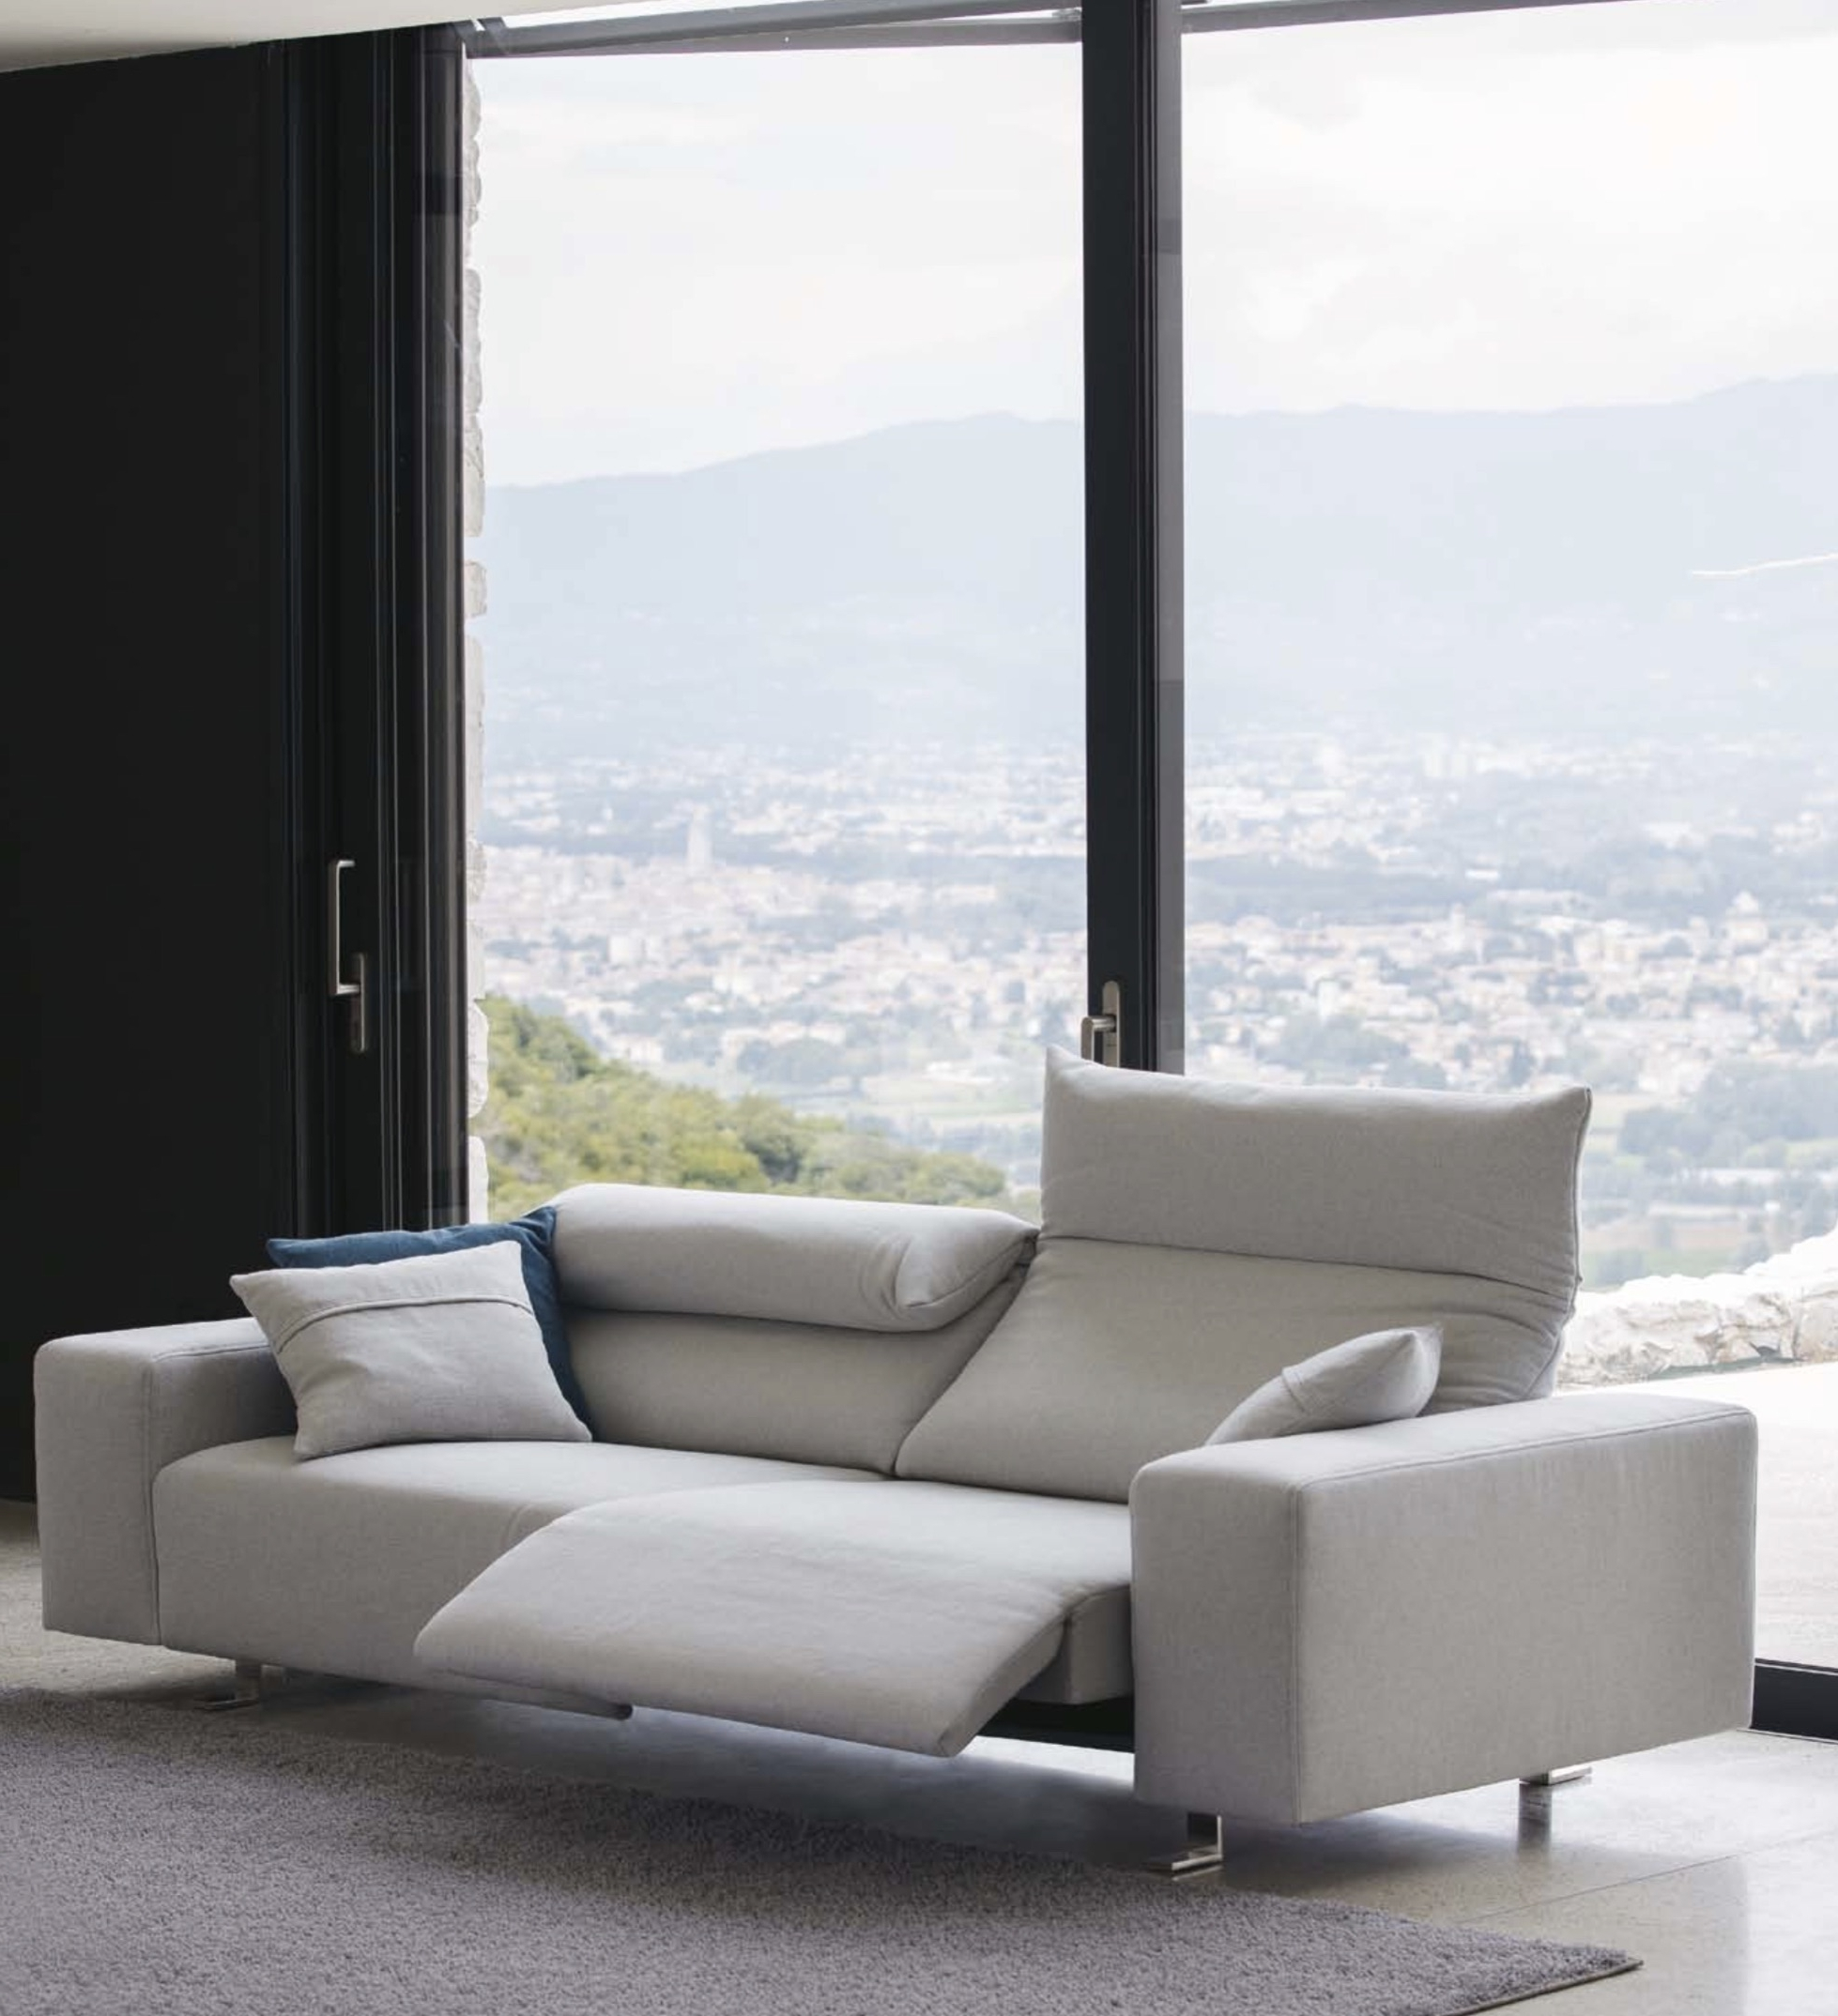 Modern Sofas In Most Popular Italian Designed Furniture Inspirational Italian Sofas At (View 10 of 20)